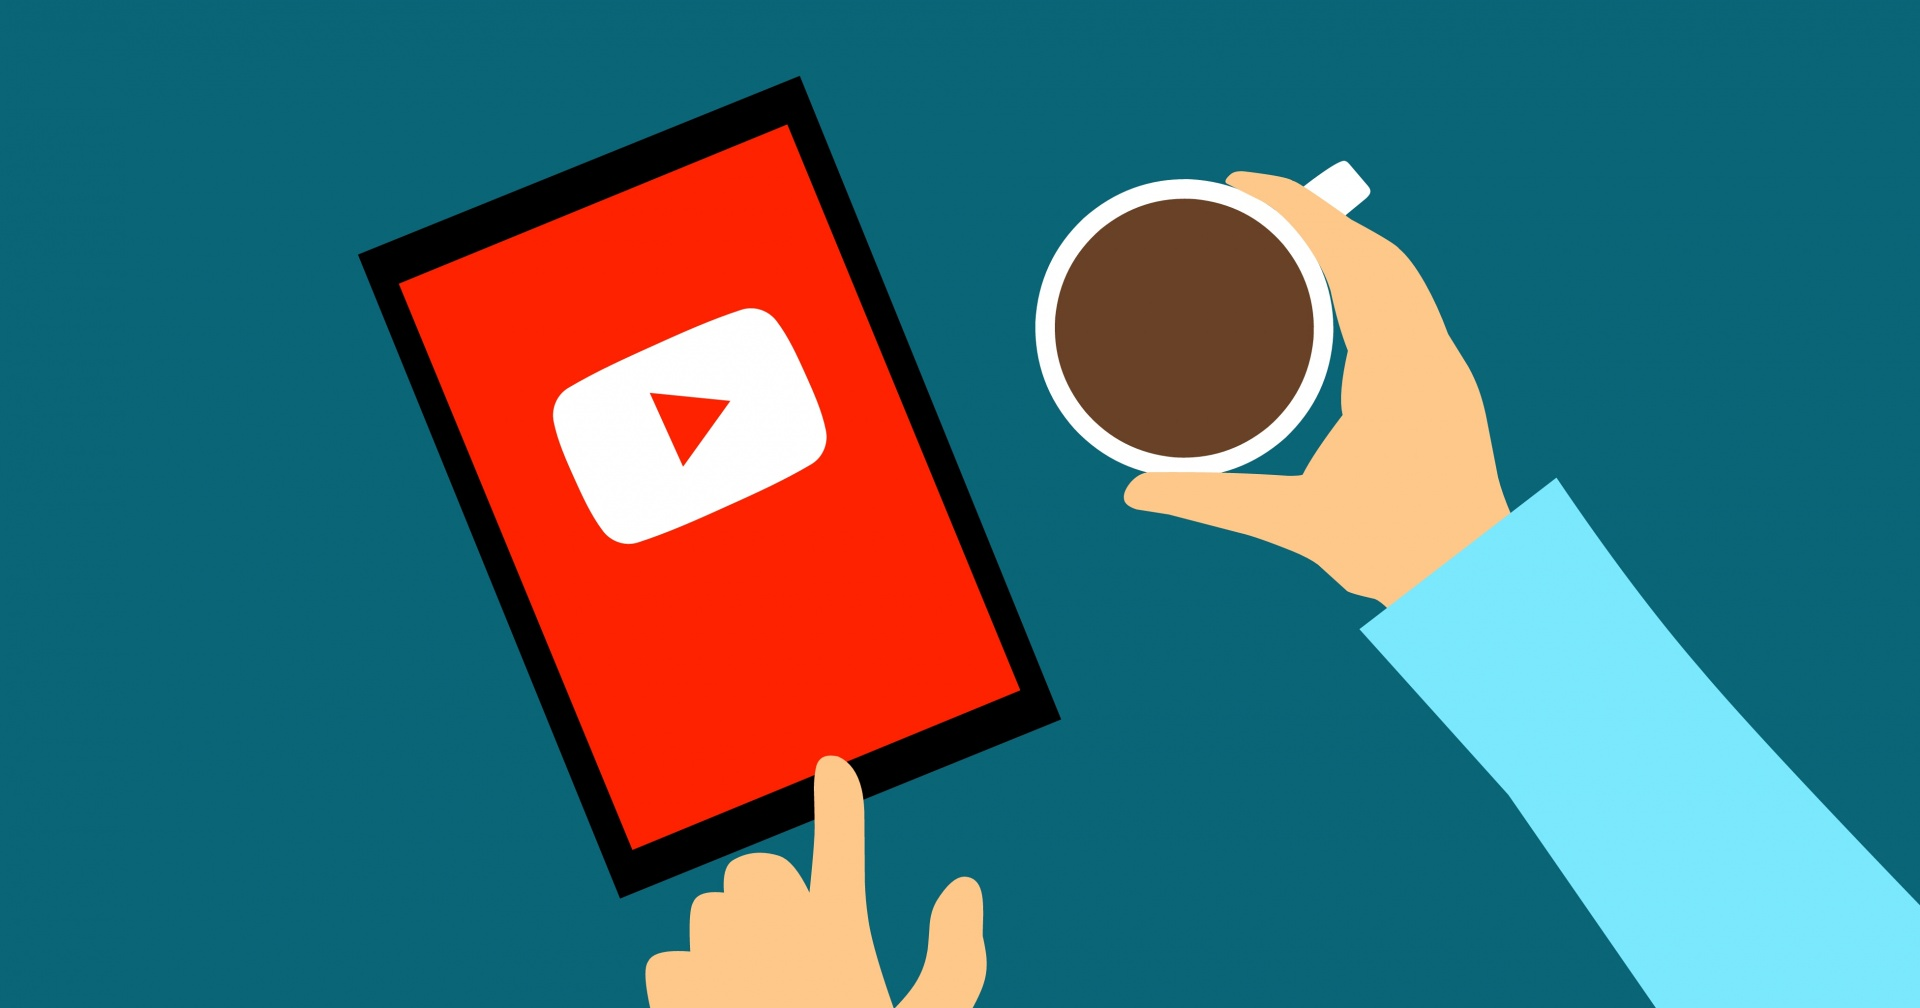 YouTube Crypto Channels Purge Continues, a New Case Reported